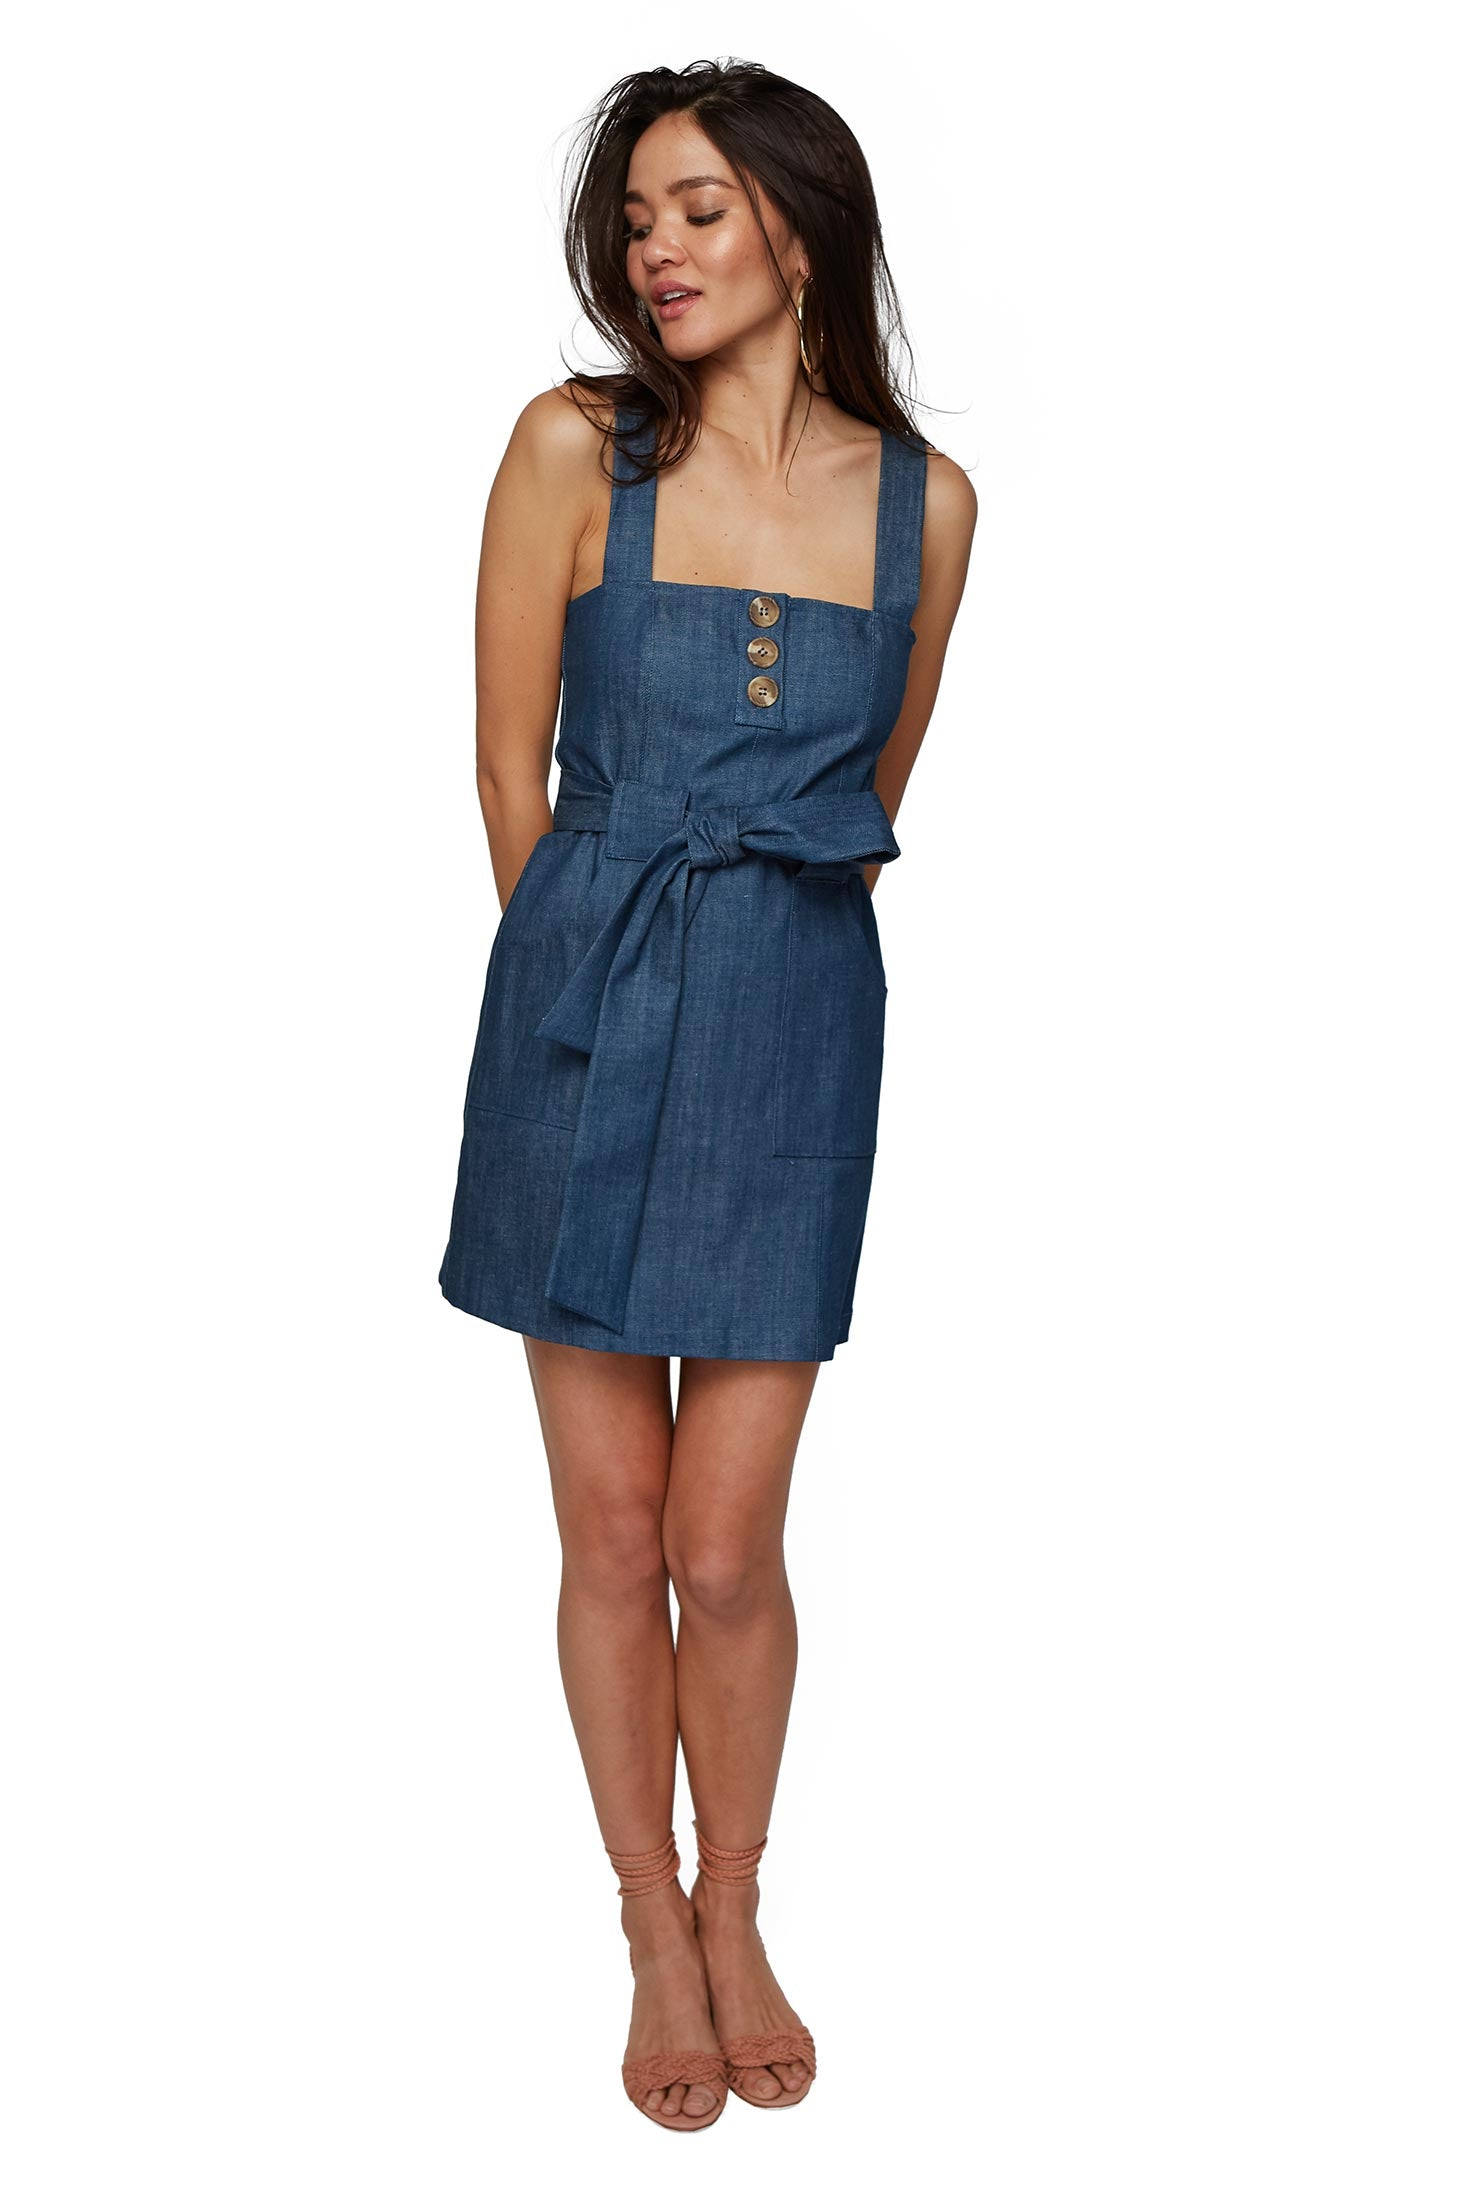 Valerie Dress - Marina Denim